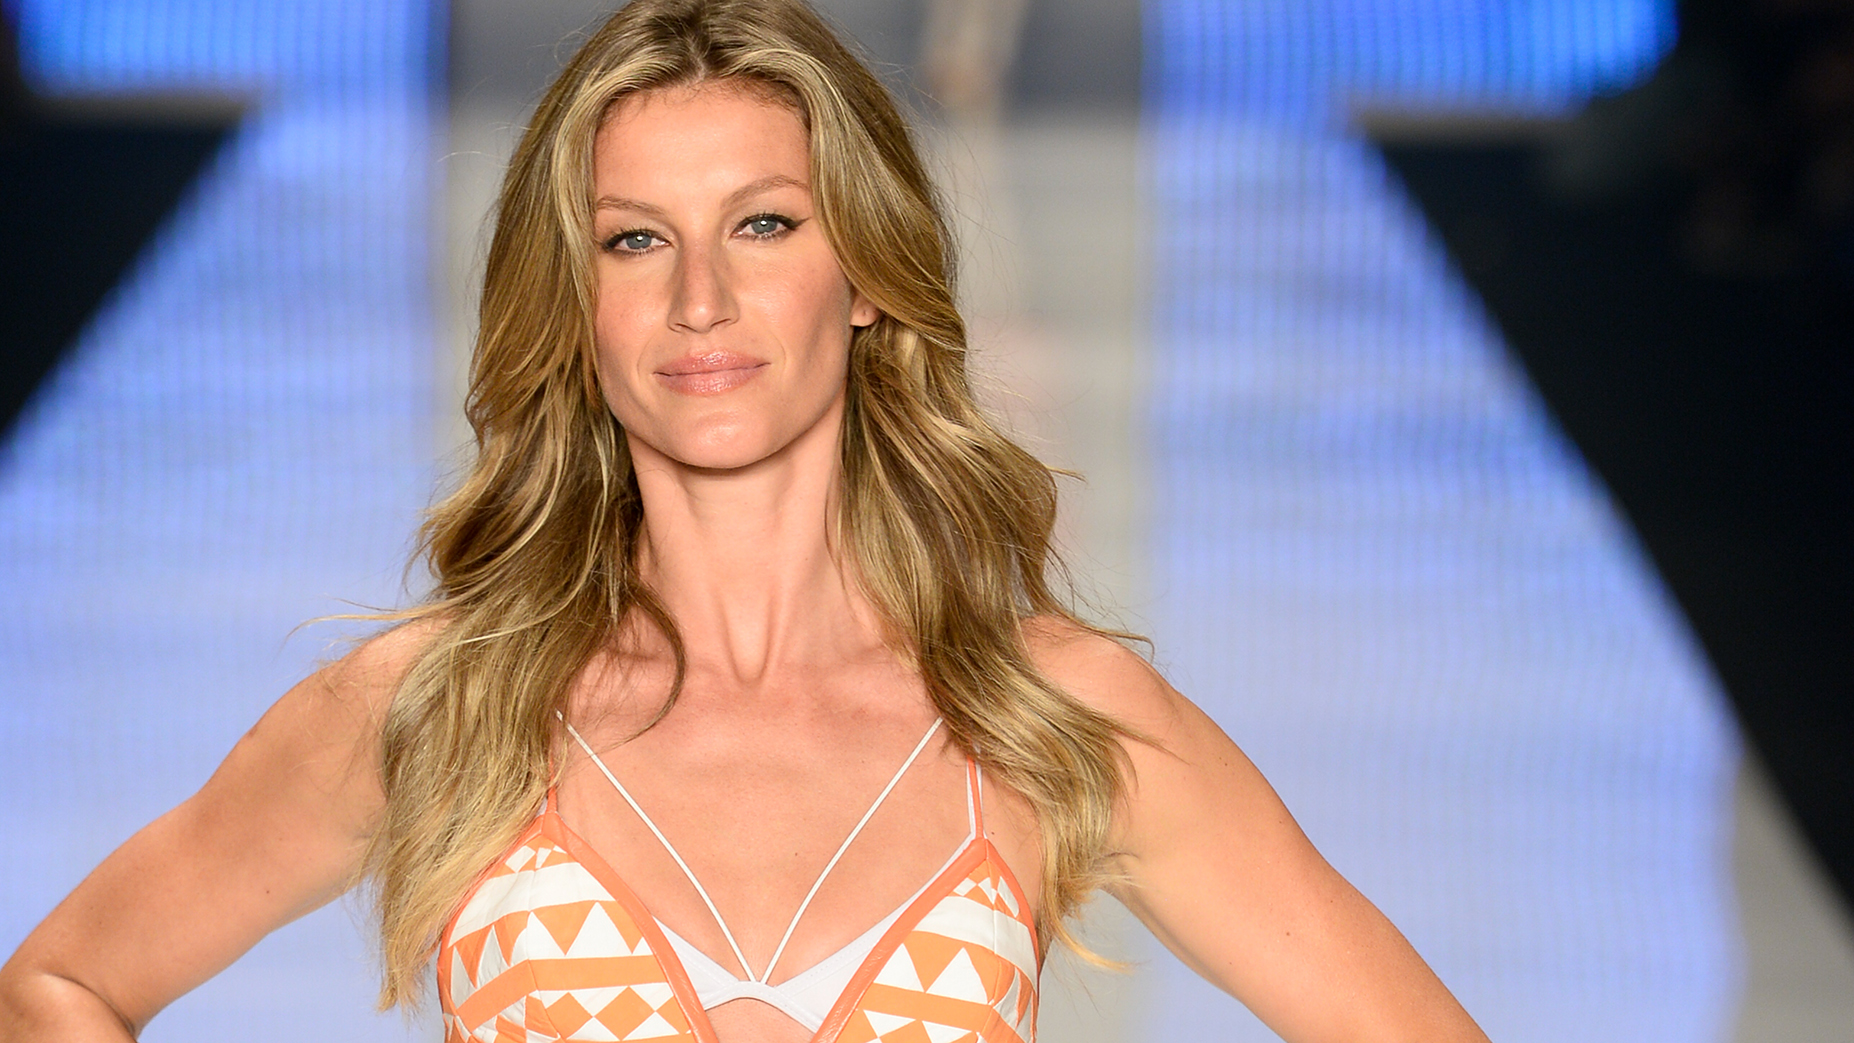 The Internet Is Sure That This 16-Year-Old Model Is Gisele Bündchen's Doppelgänger